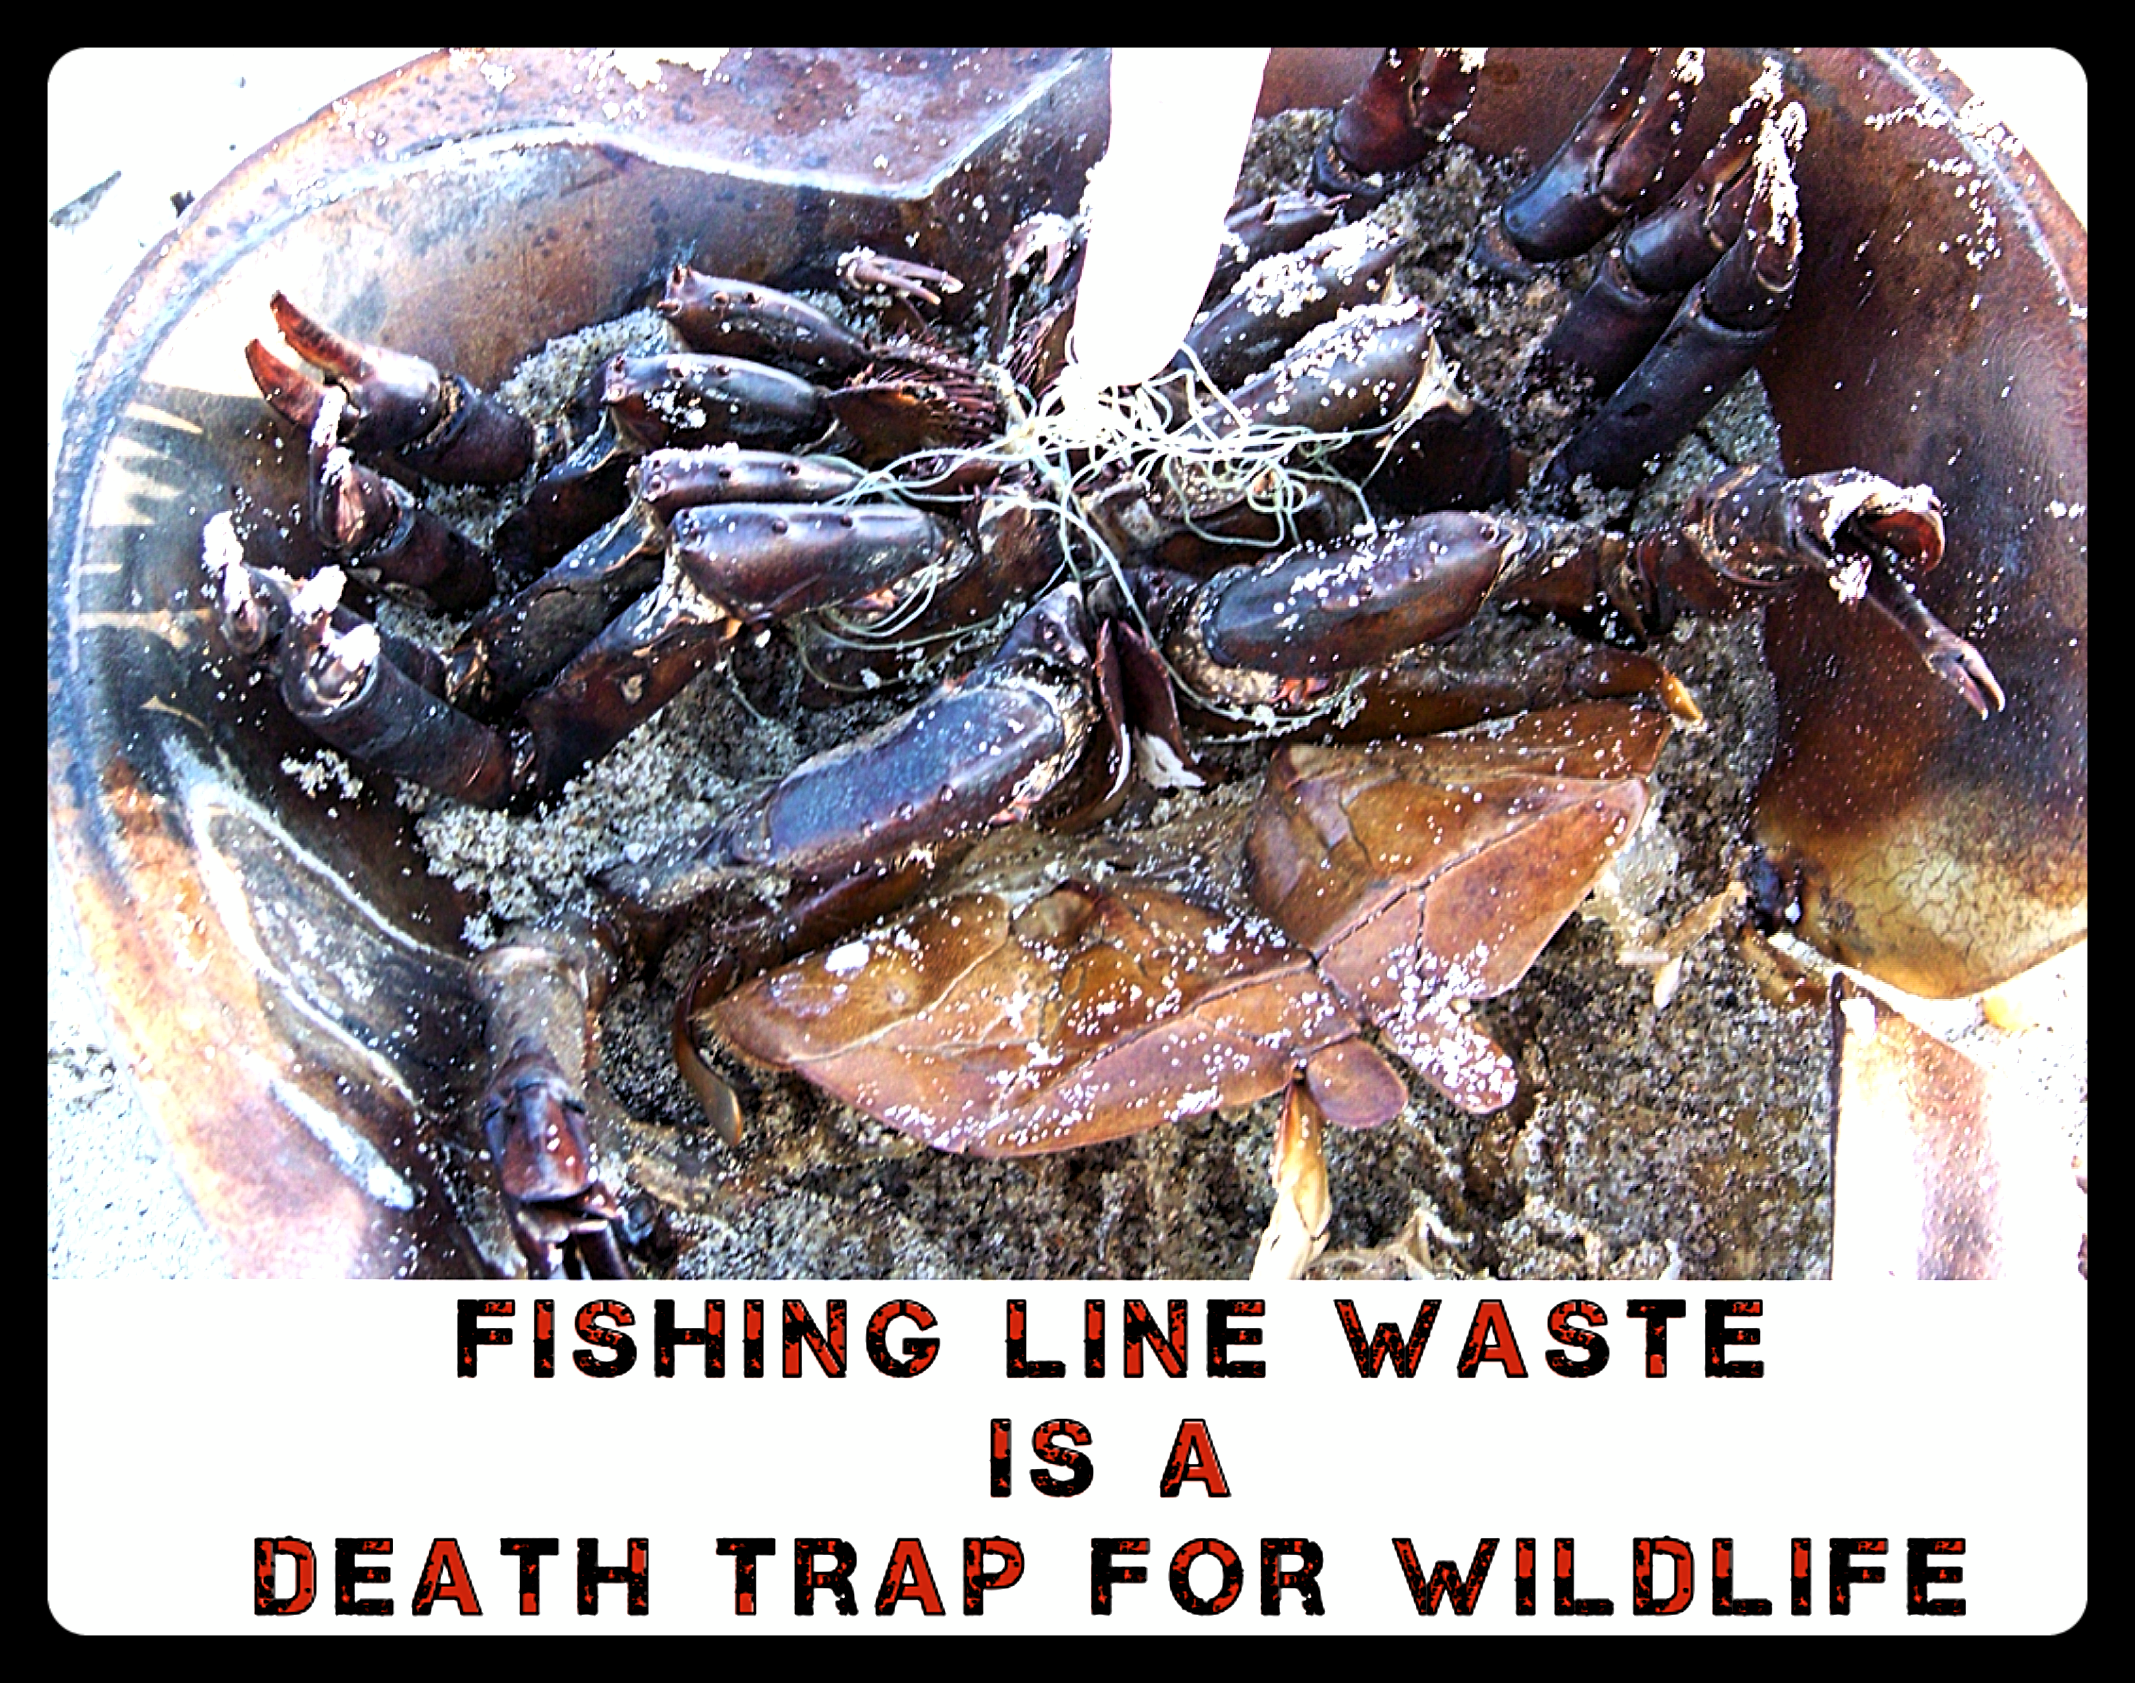 OLD FISHING LINE CAN KILL! - STOP ANIMALS FROM ANOTHER USELESS DEATH!